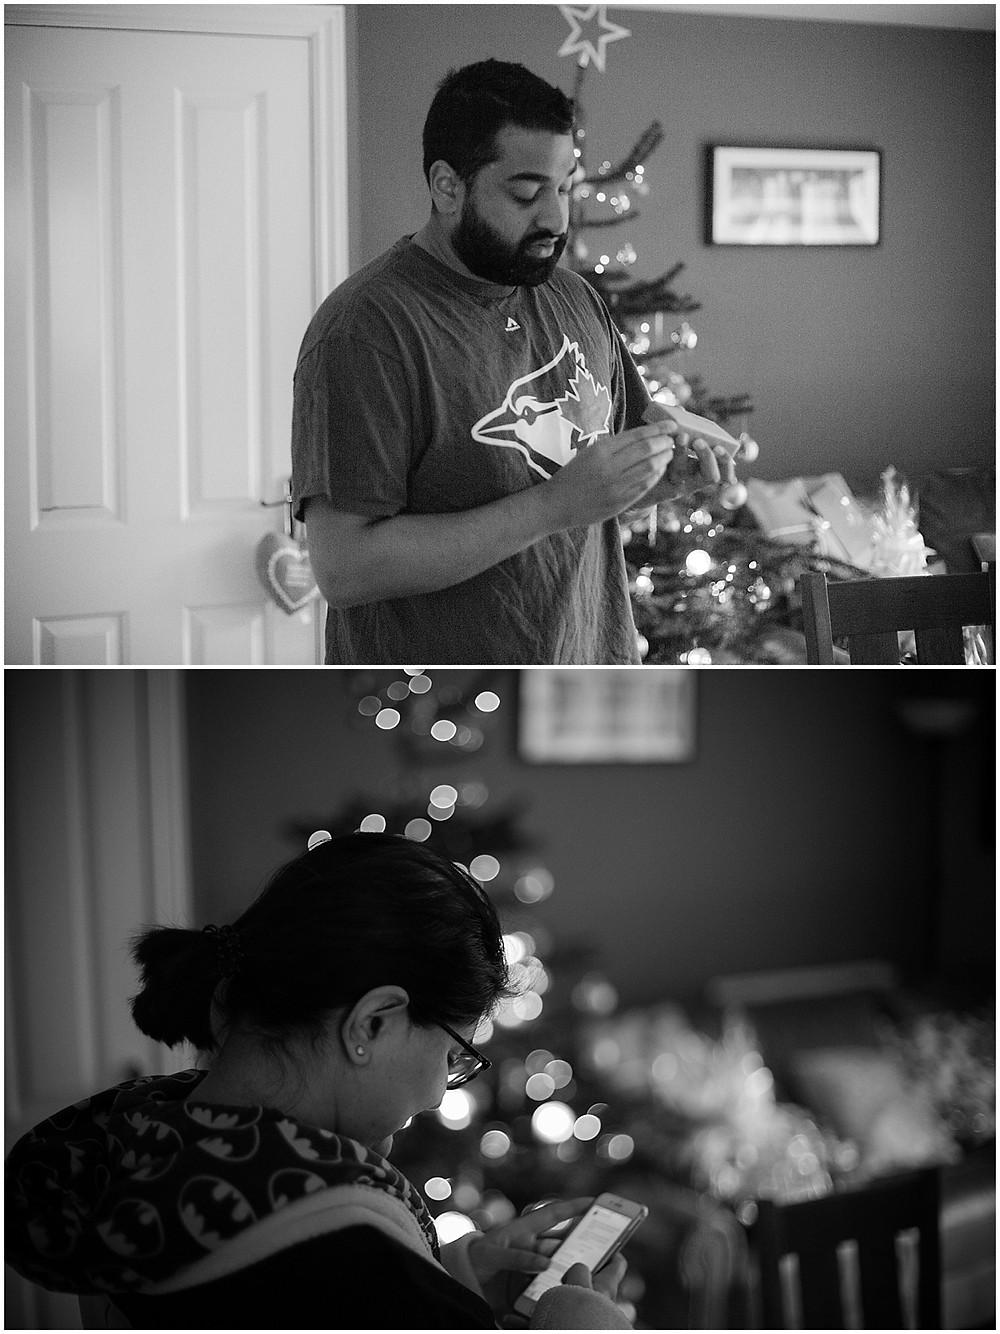 Nick opening his Christmas present in Leciester and Deepa Rodrigues posting on photography Instagram